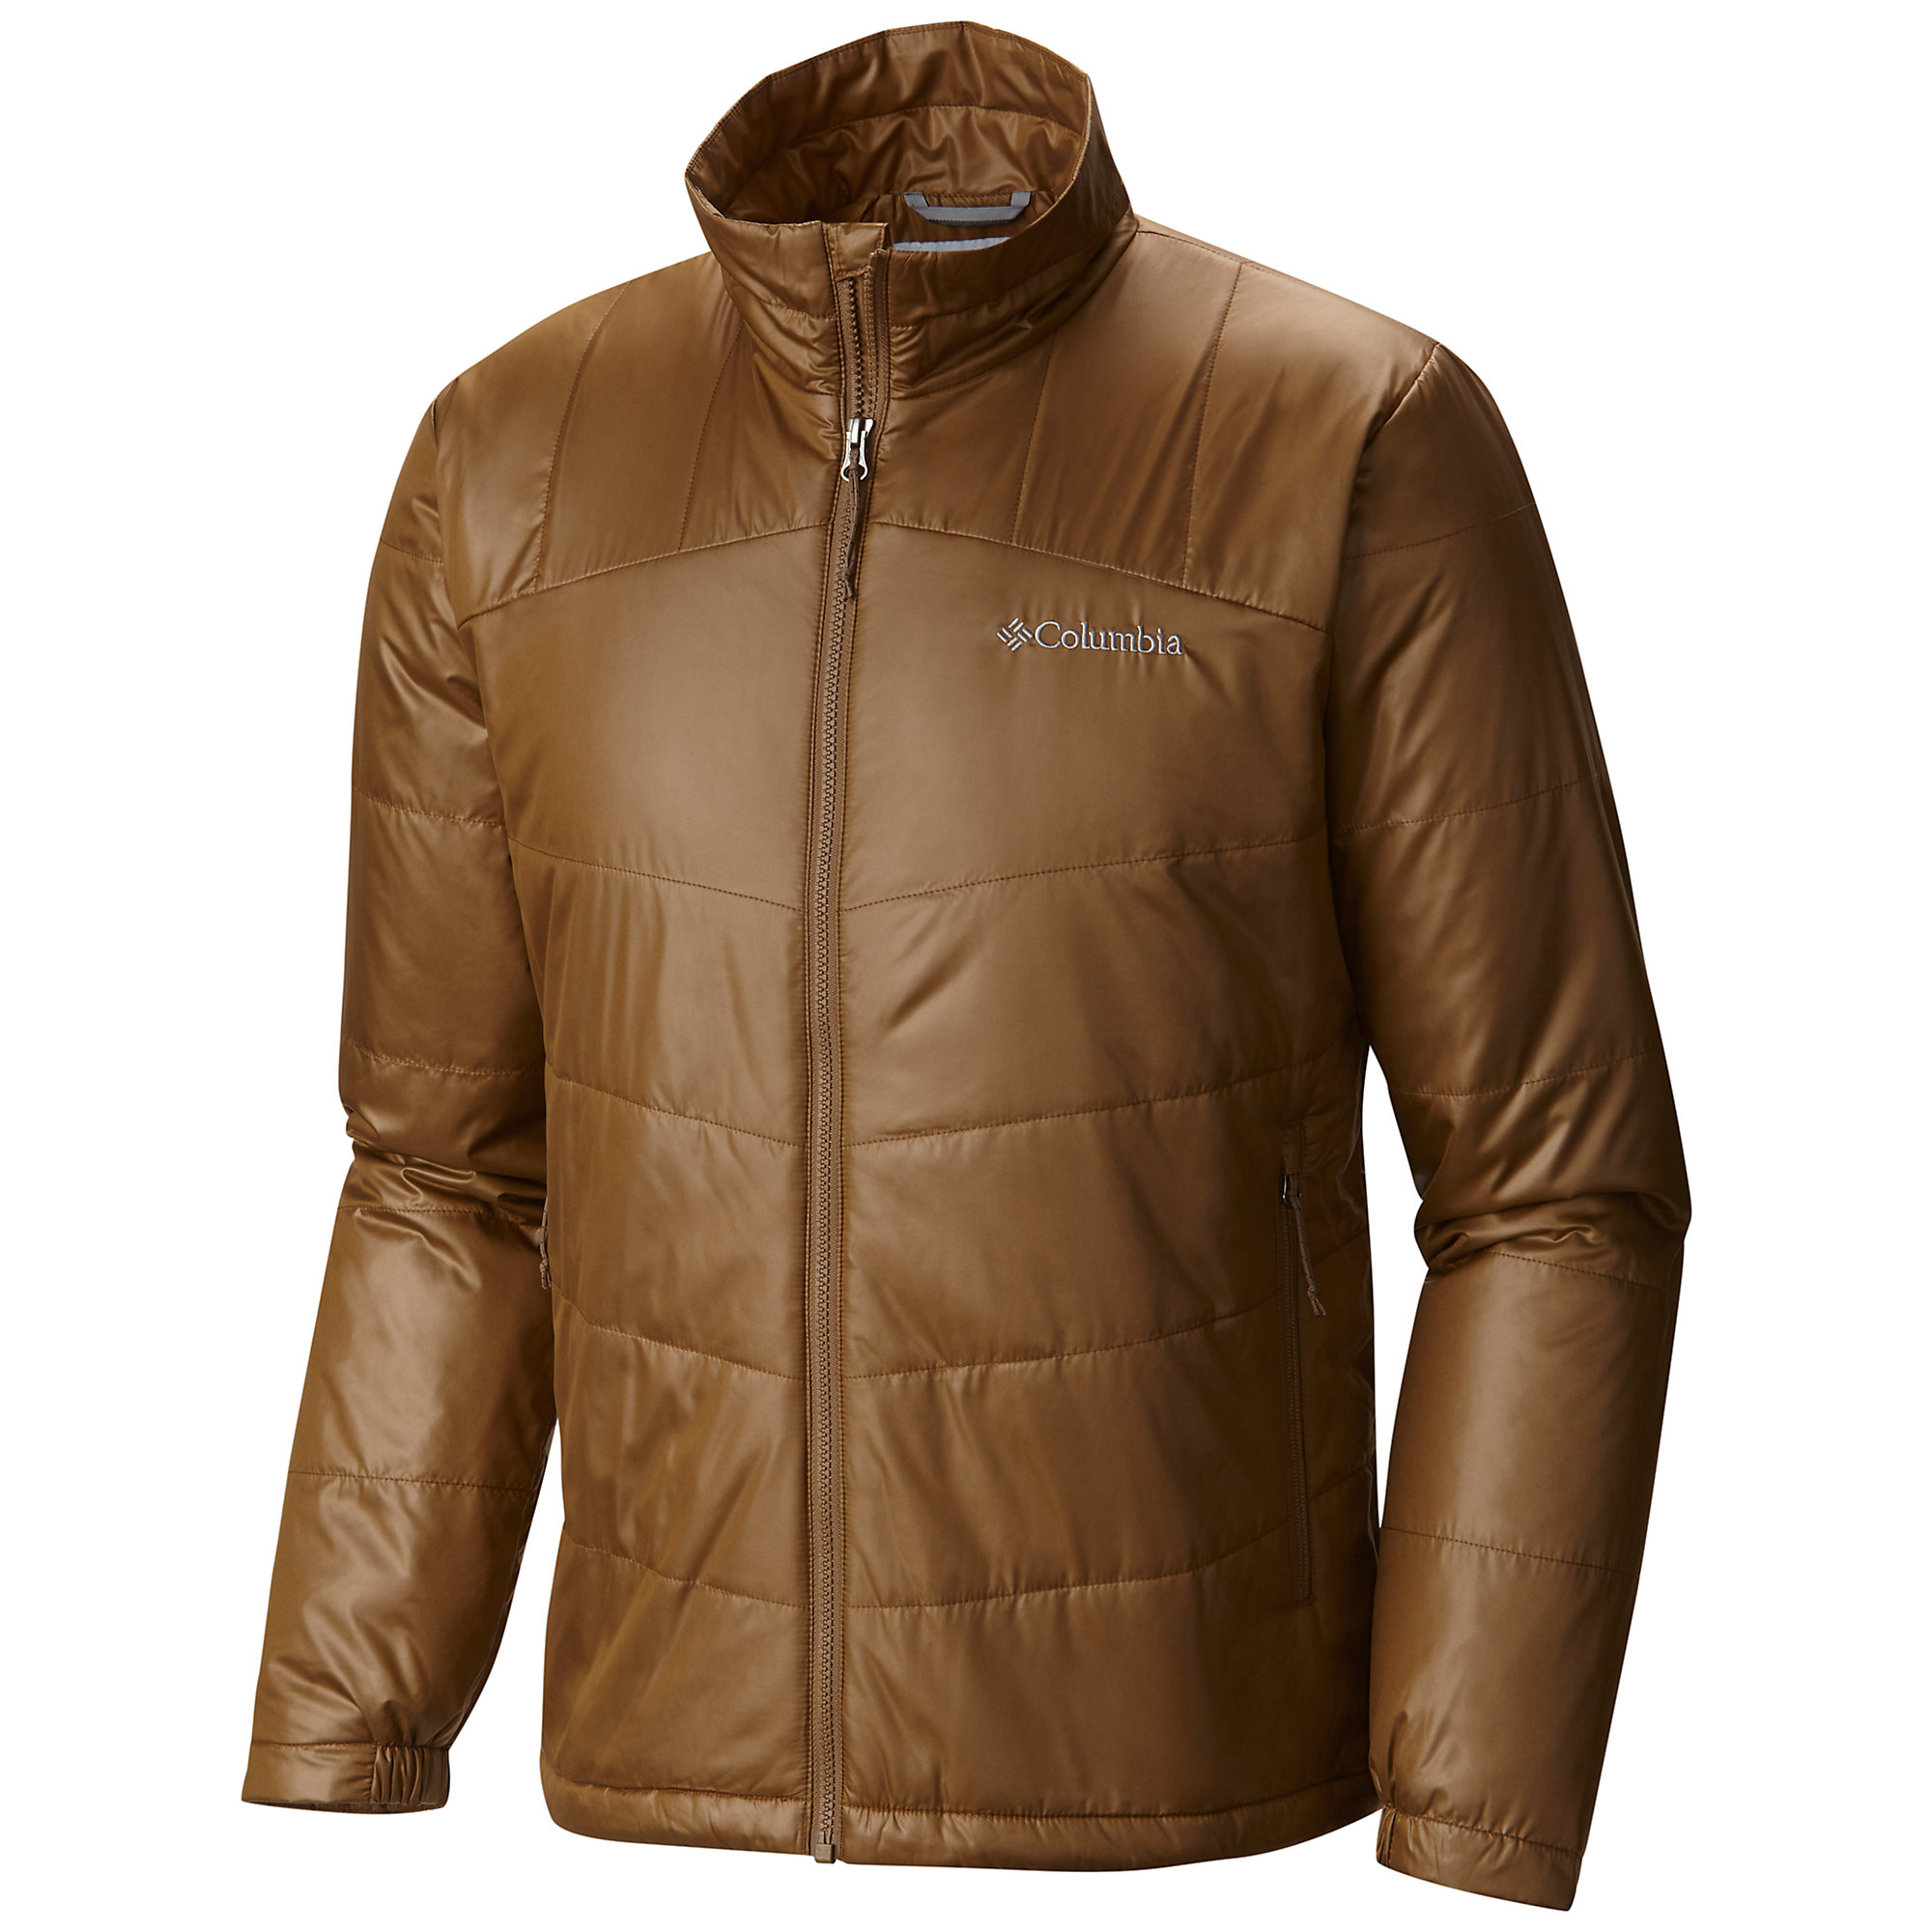 Columbia Cutting Strokes Jacket